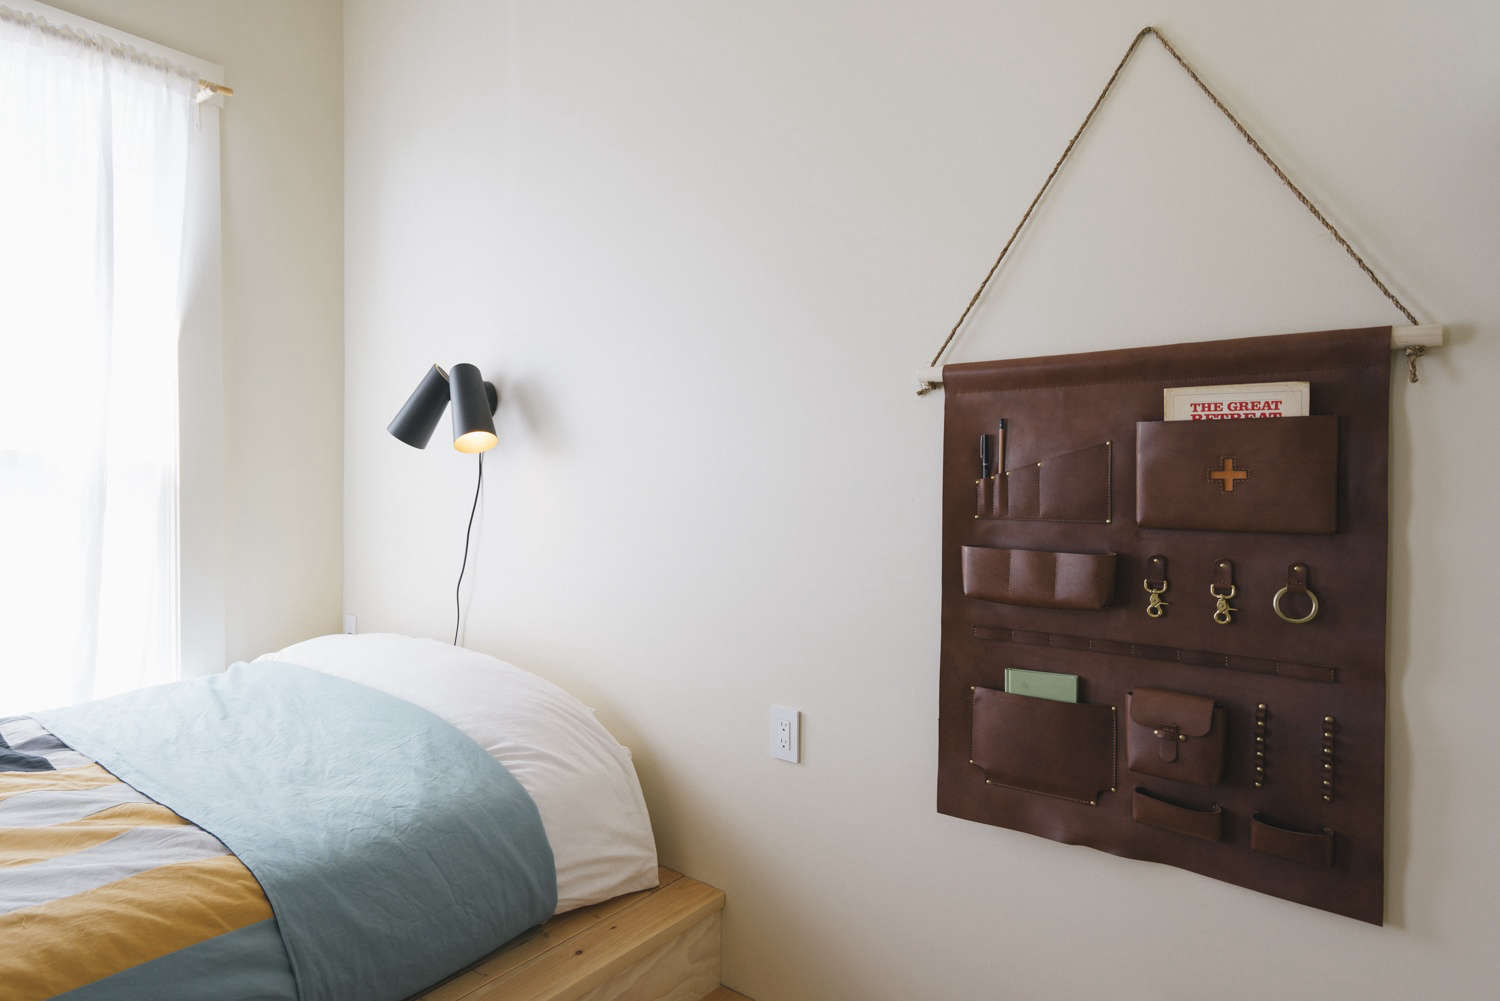 Jennings Hotel hanging wall pockets. Photograph by Greg Hennes